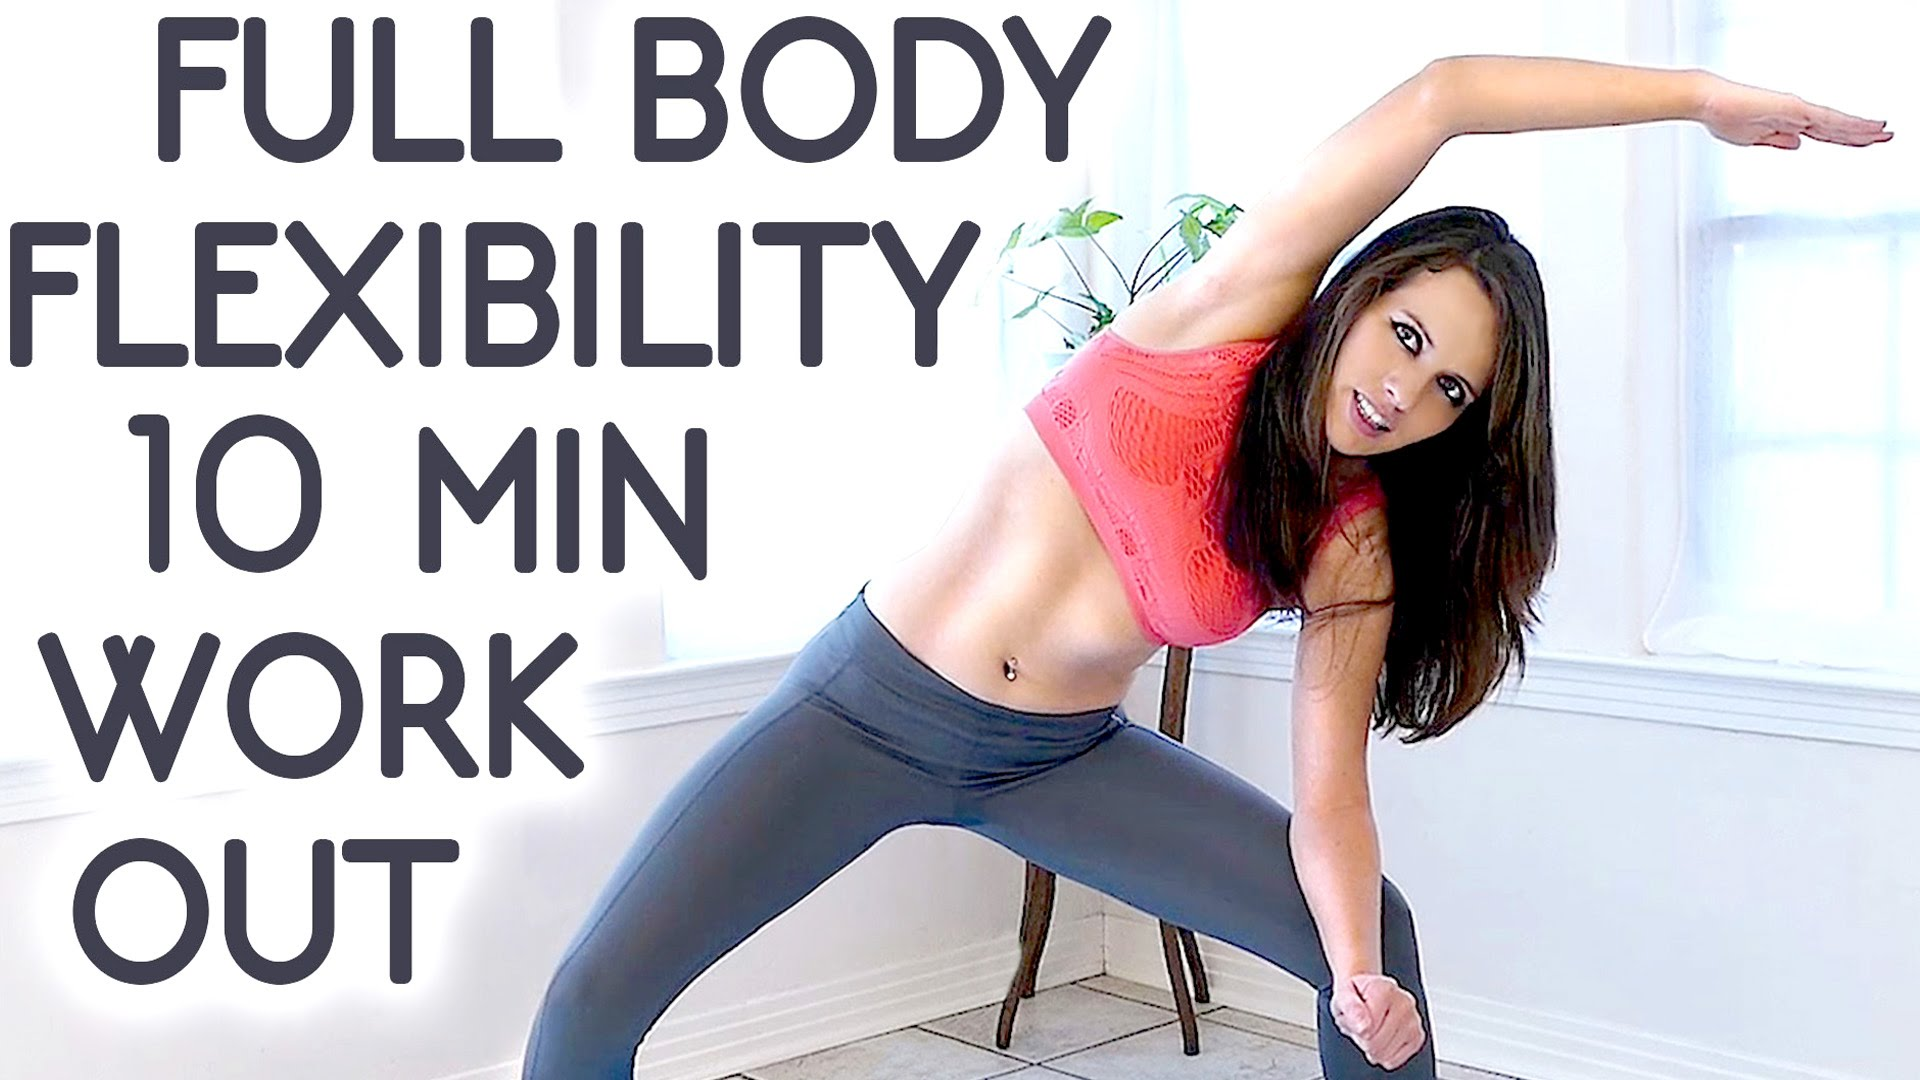 Beginners Yoga Short And Easy 10 Minute Workout Routine Video